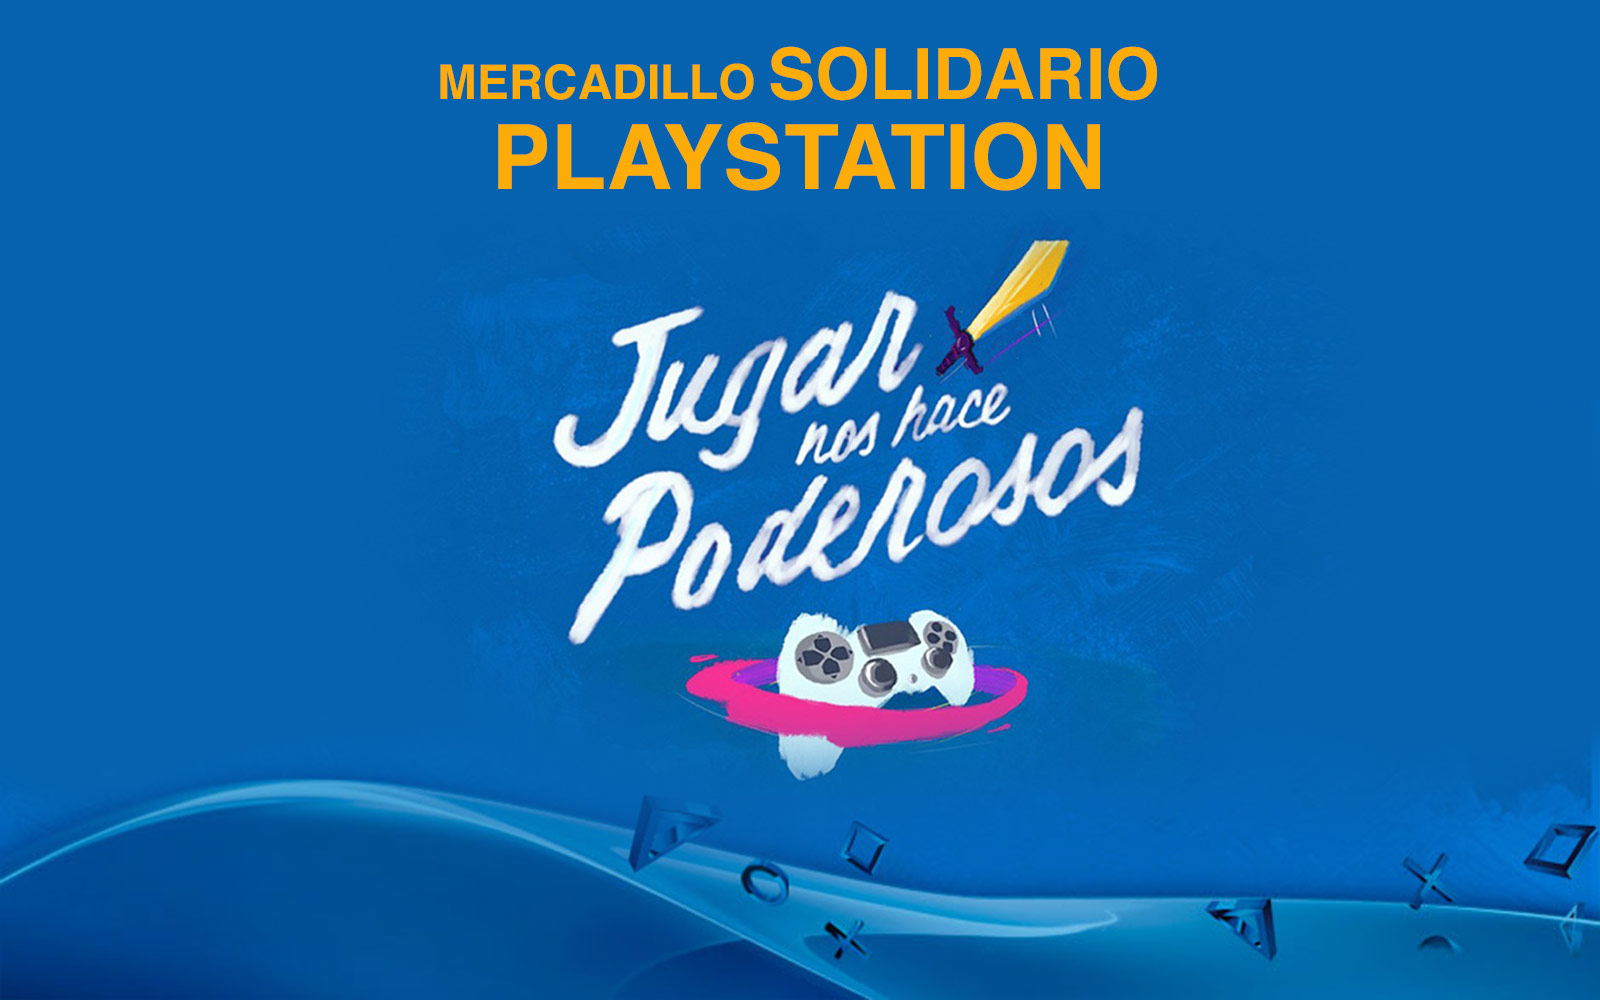 Mercadillo solidario de PlayStation a beneficio de la Fundación Rafa Nadal